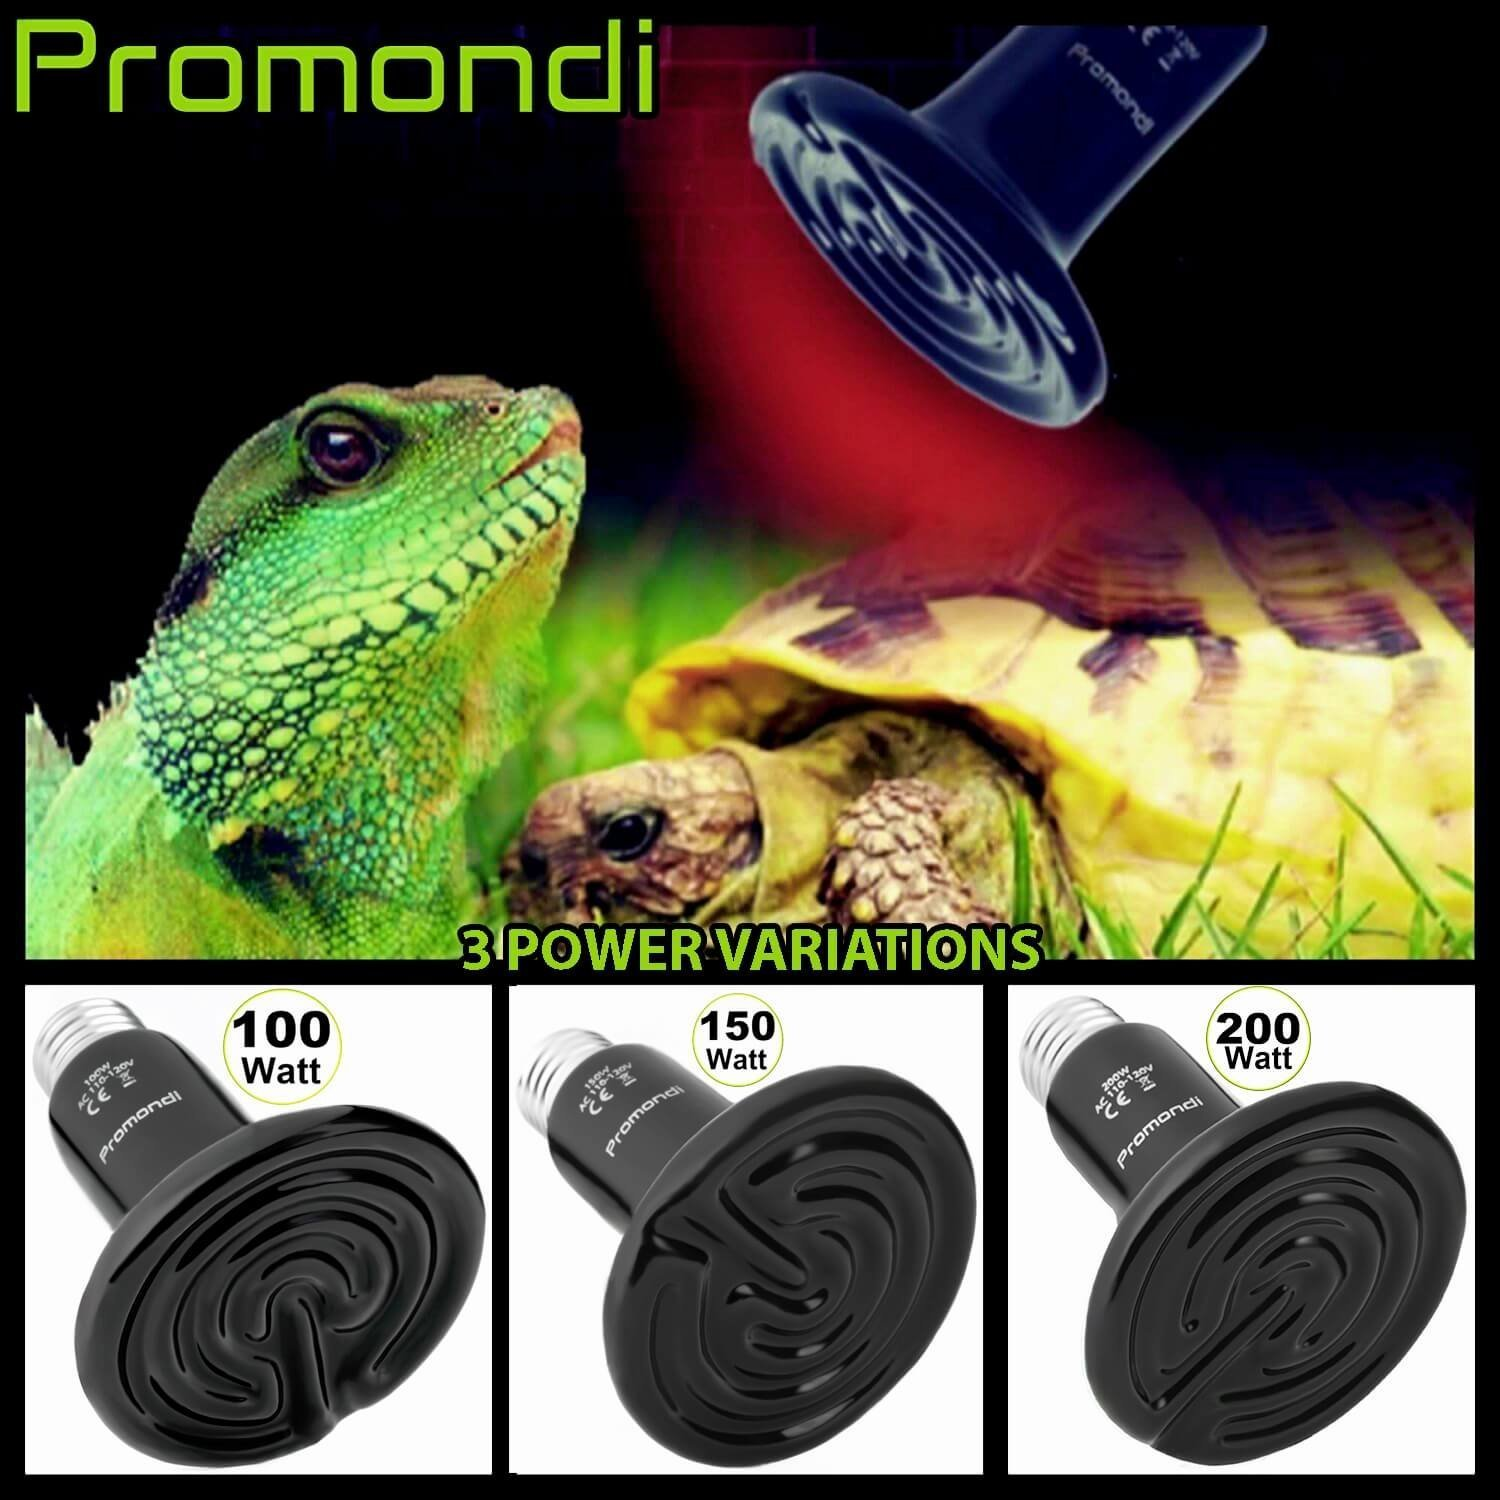 Ceramic Infrared Heat Emitter Lamp 200W | Reptile Brooder Chicken Coop Outdoor Pet Heater Bulb | 20,000+ Hours Power Lamps by Promondi by Promondi (Image #5)